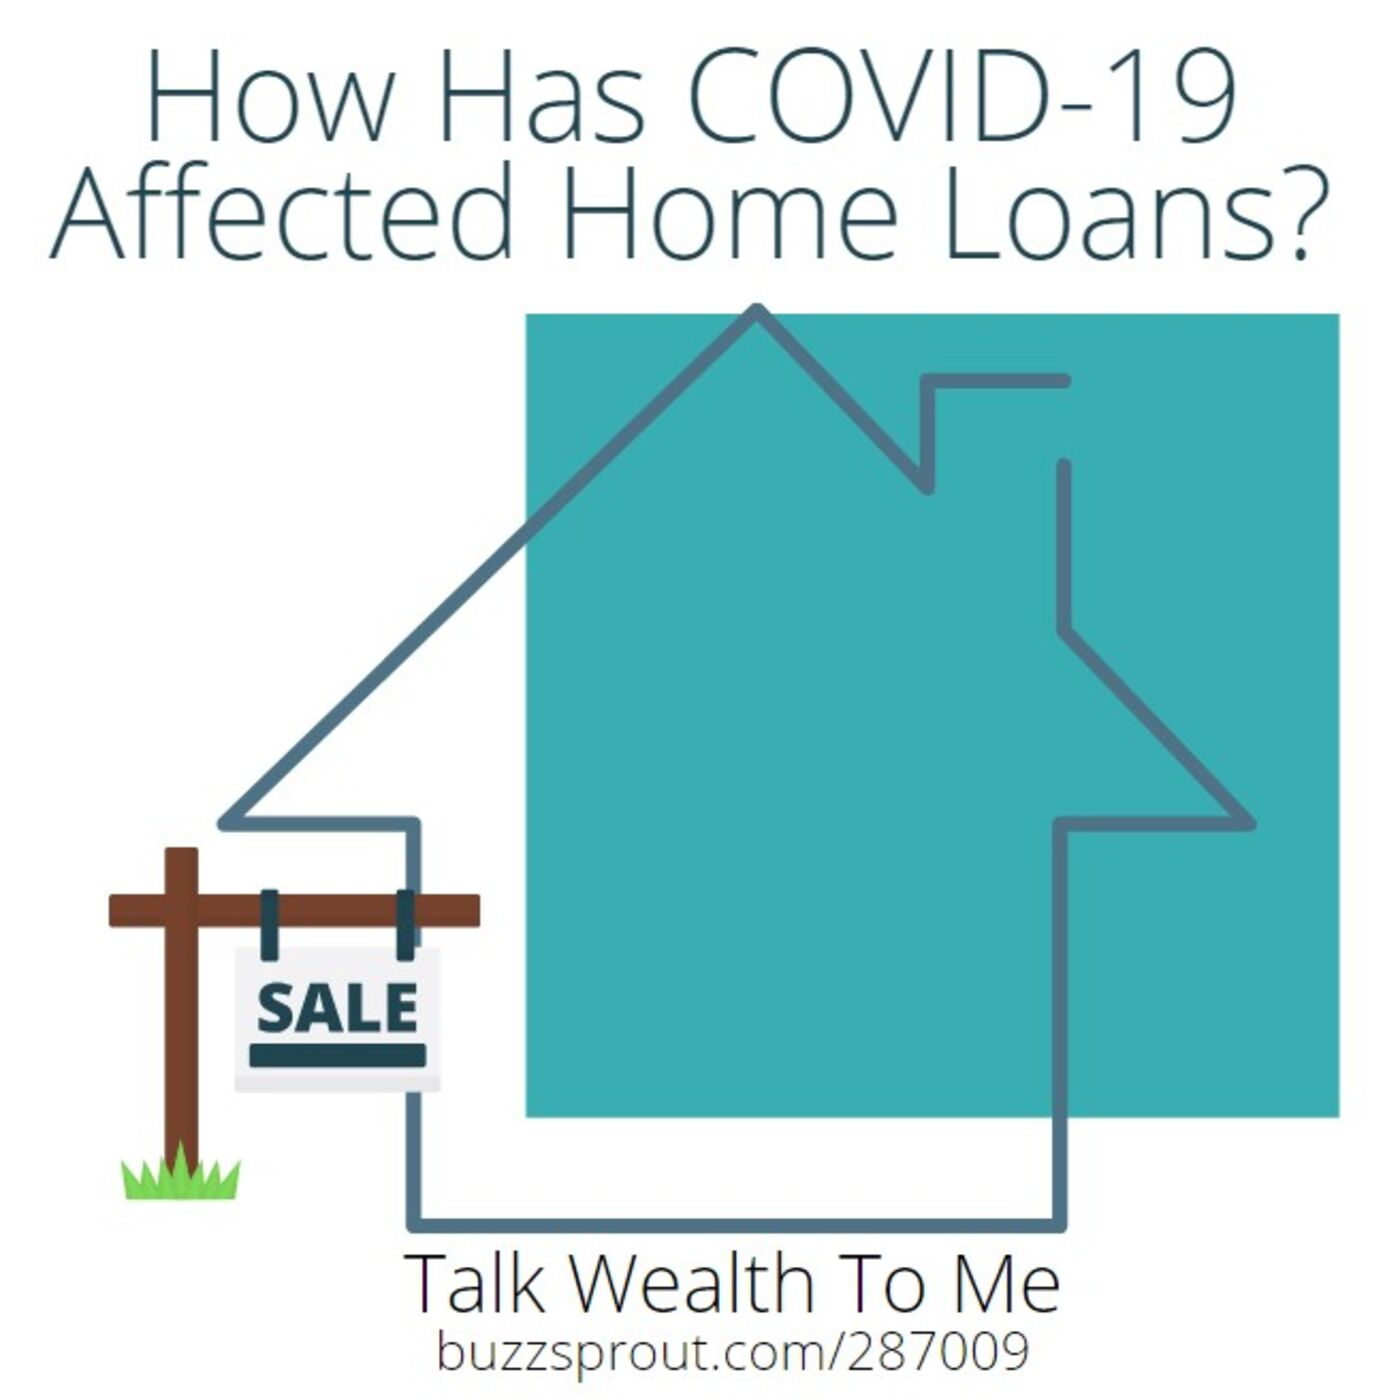 How Has COVID-19 Affected Home Loans?